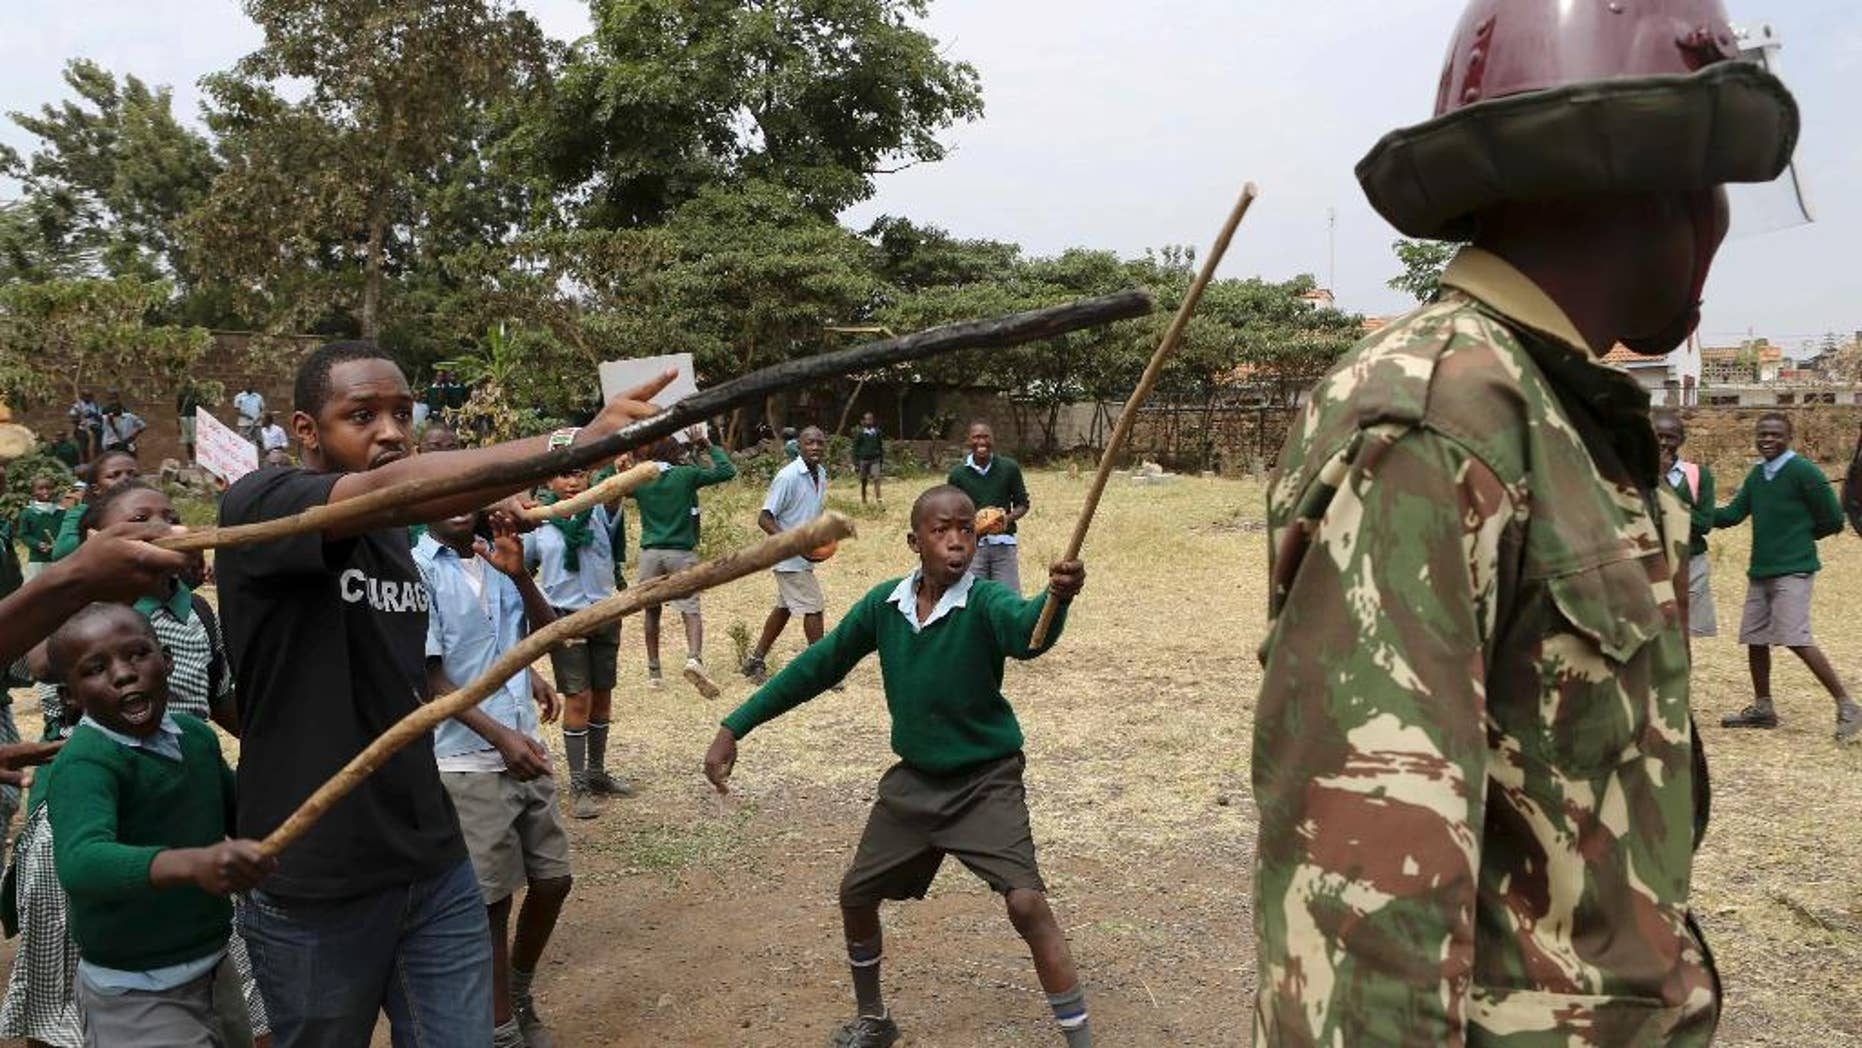 Kenyan school pupils and activists challenge riot police during a protest against the removal of their school's playground, at the Langata Road Primary School, in Nairobi, Kenya Monday, Jan. 19, 2015. Kenyan police tear-gassed schoolchildren demonstrating against the removal of their school's playground, the land of which has been allegedly grabbed by a powerful politician, according to a Kenyan human rights activist. (AP Photo/Brian Inganga)